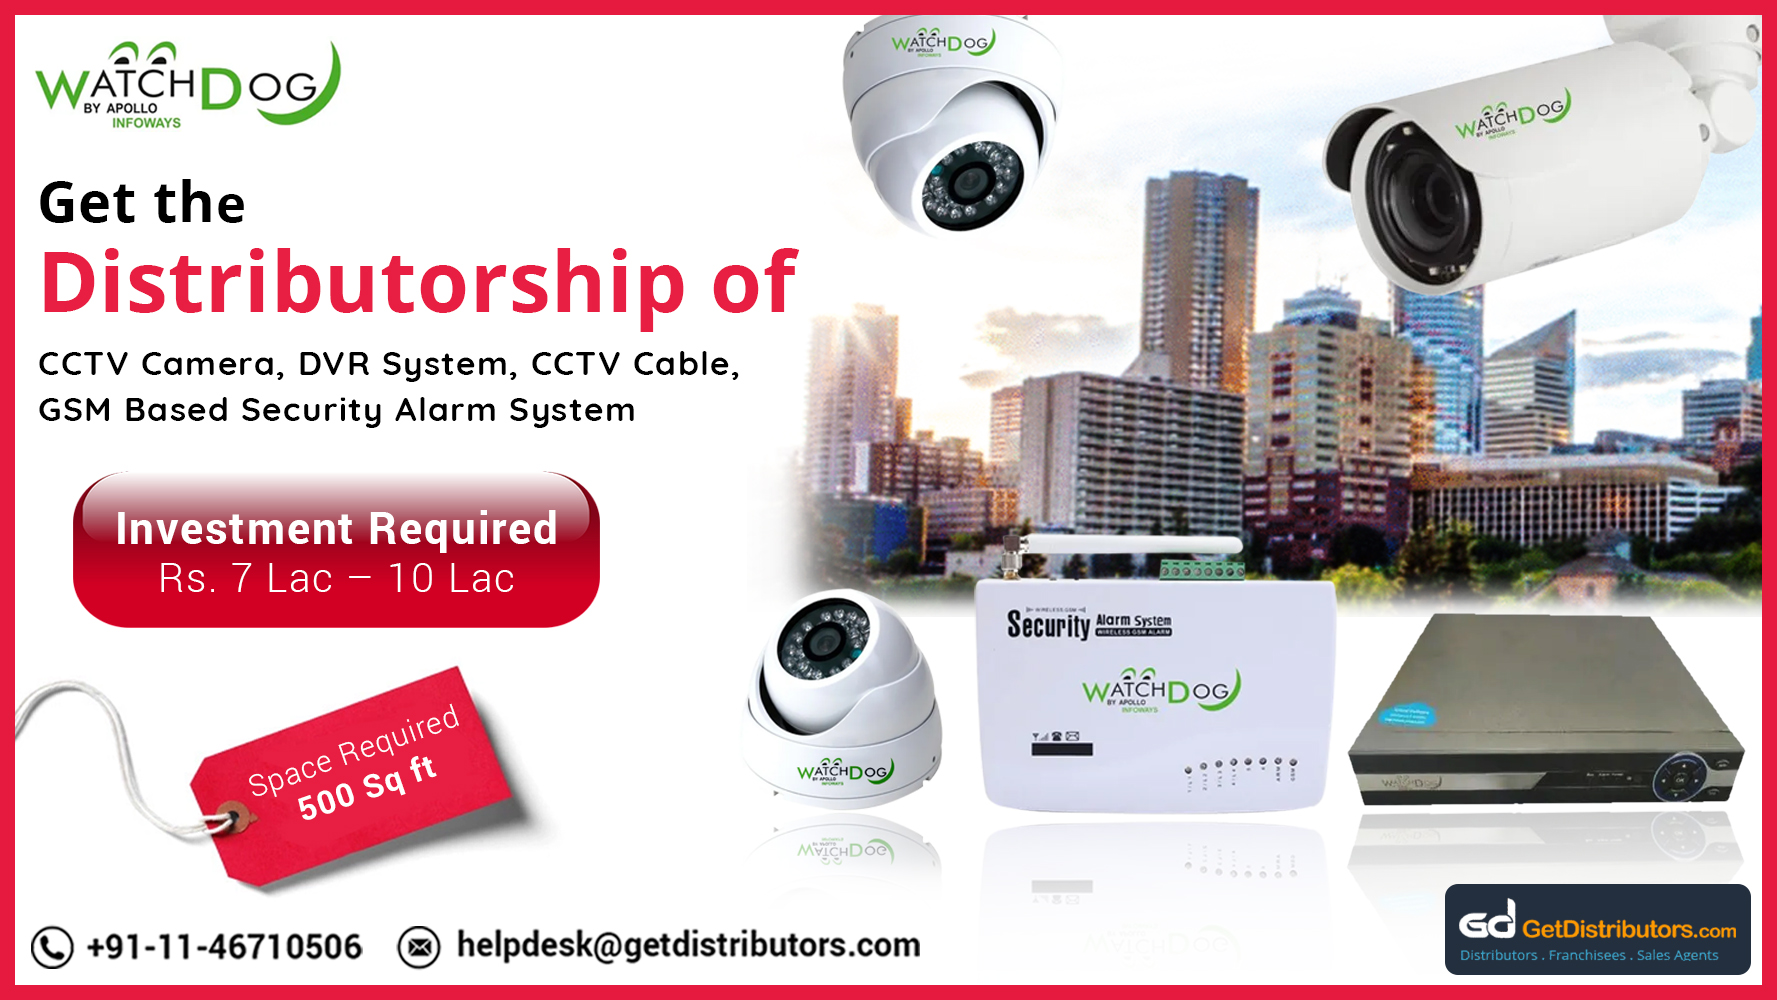 Distributorship Of CCTV Cameras With HD Resolution At Reasonable Prices